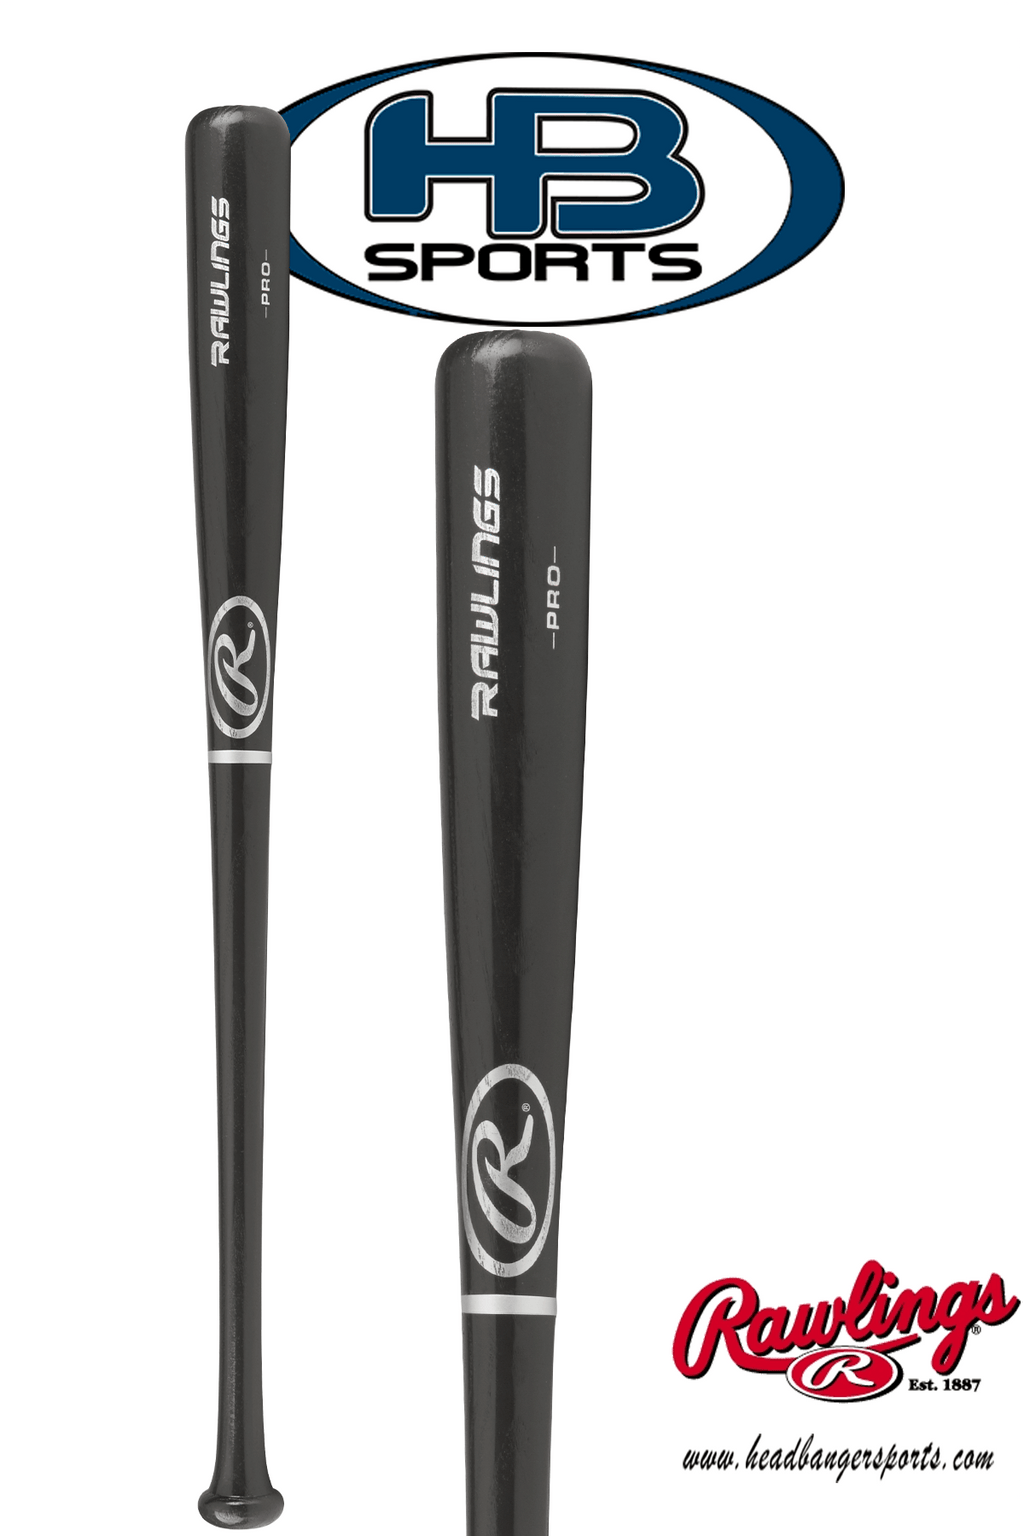 2018 Rawlings Adirondack Ash Wood Youth Baseball Bat: Y242G at headbangersports.com